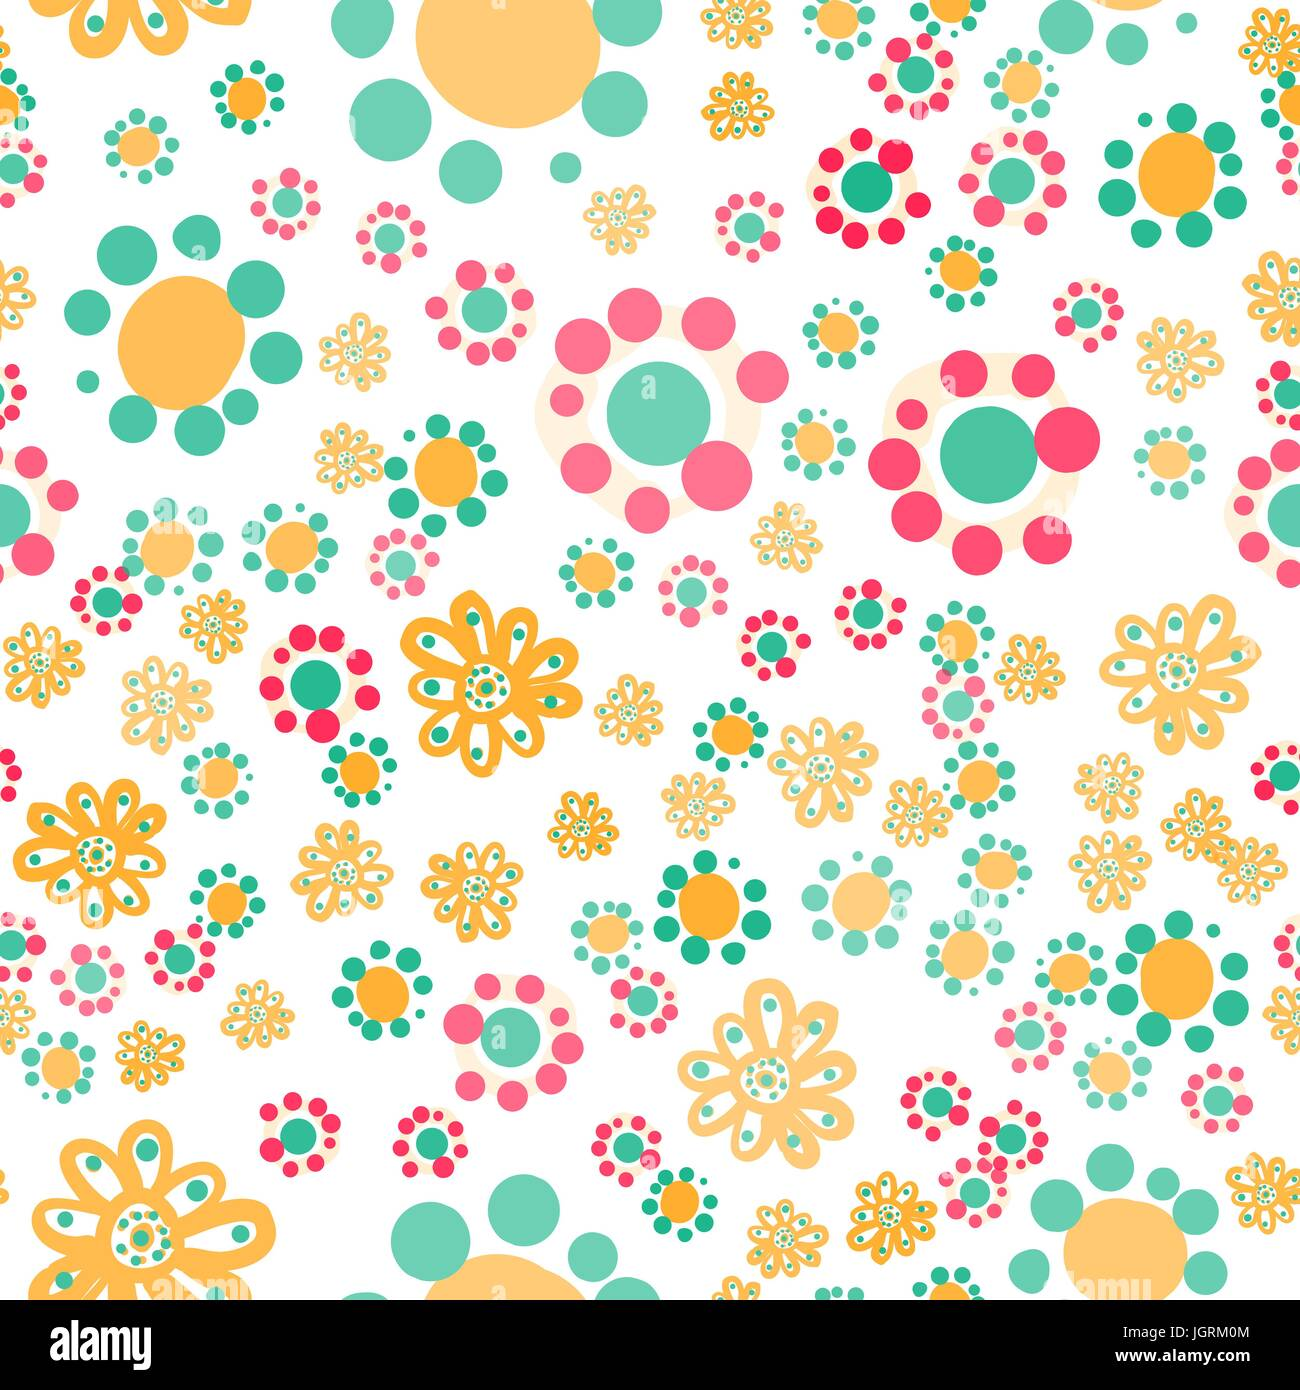 Hippie wallpaper with funny stylized colorful flowers on white background, childish naive style.